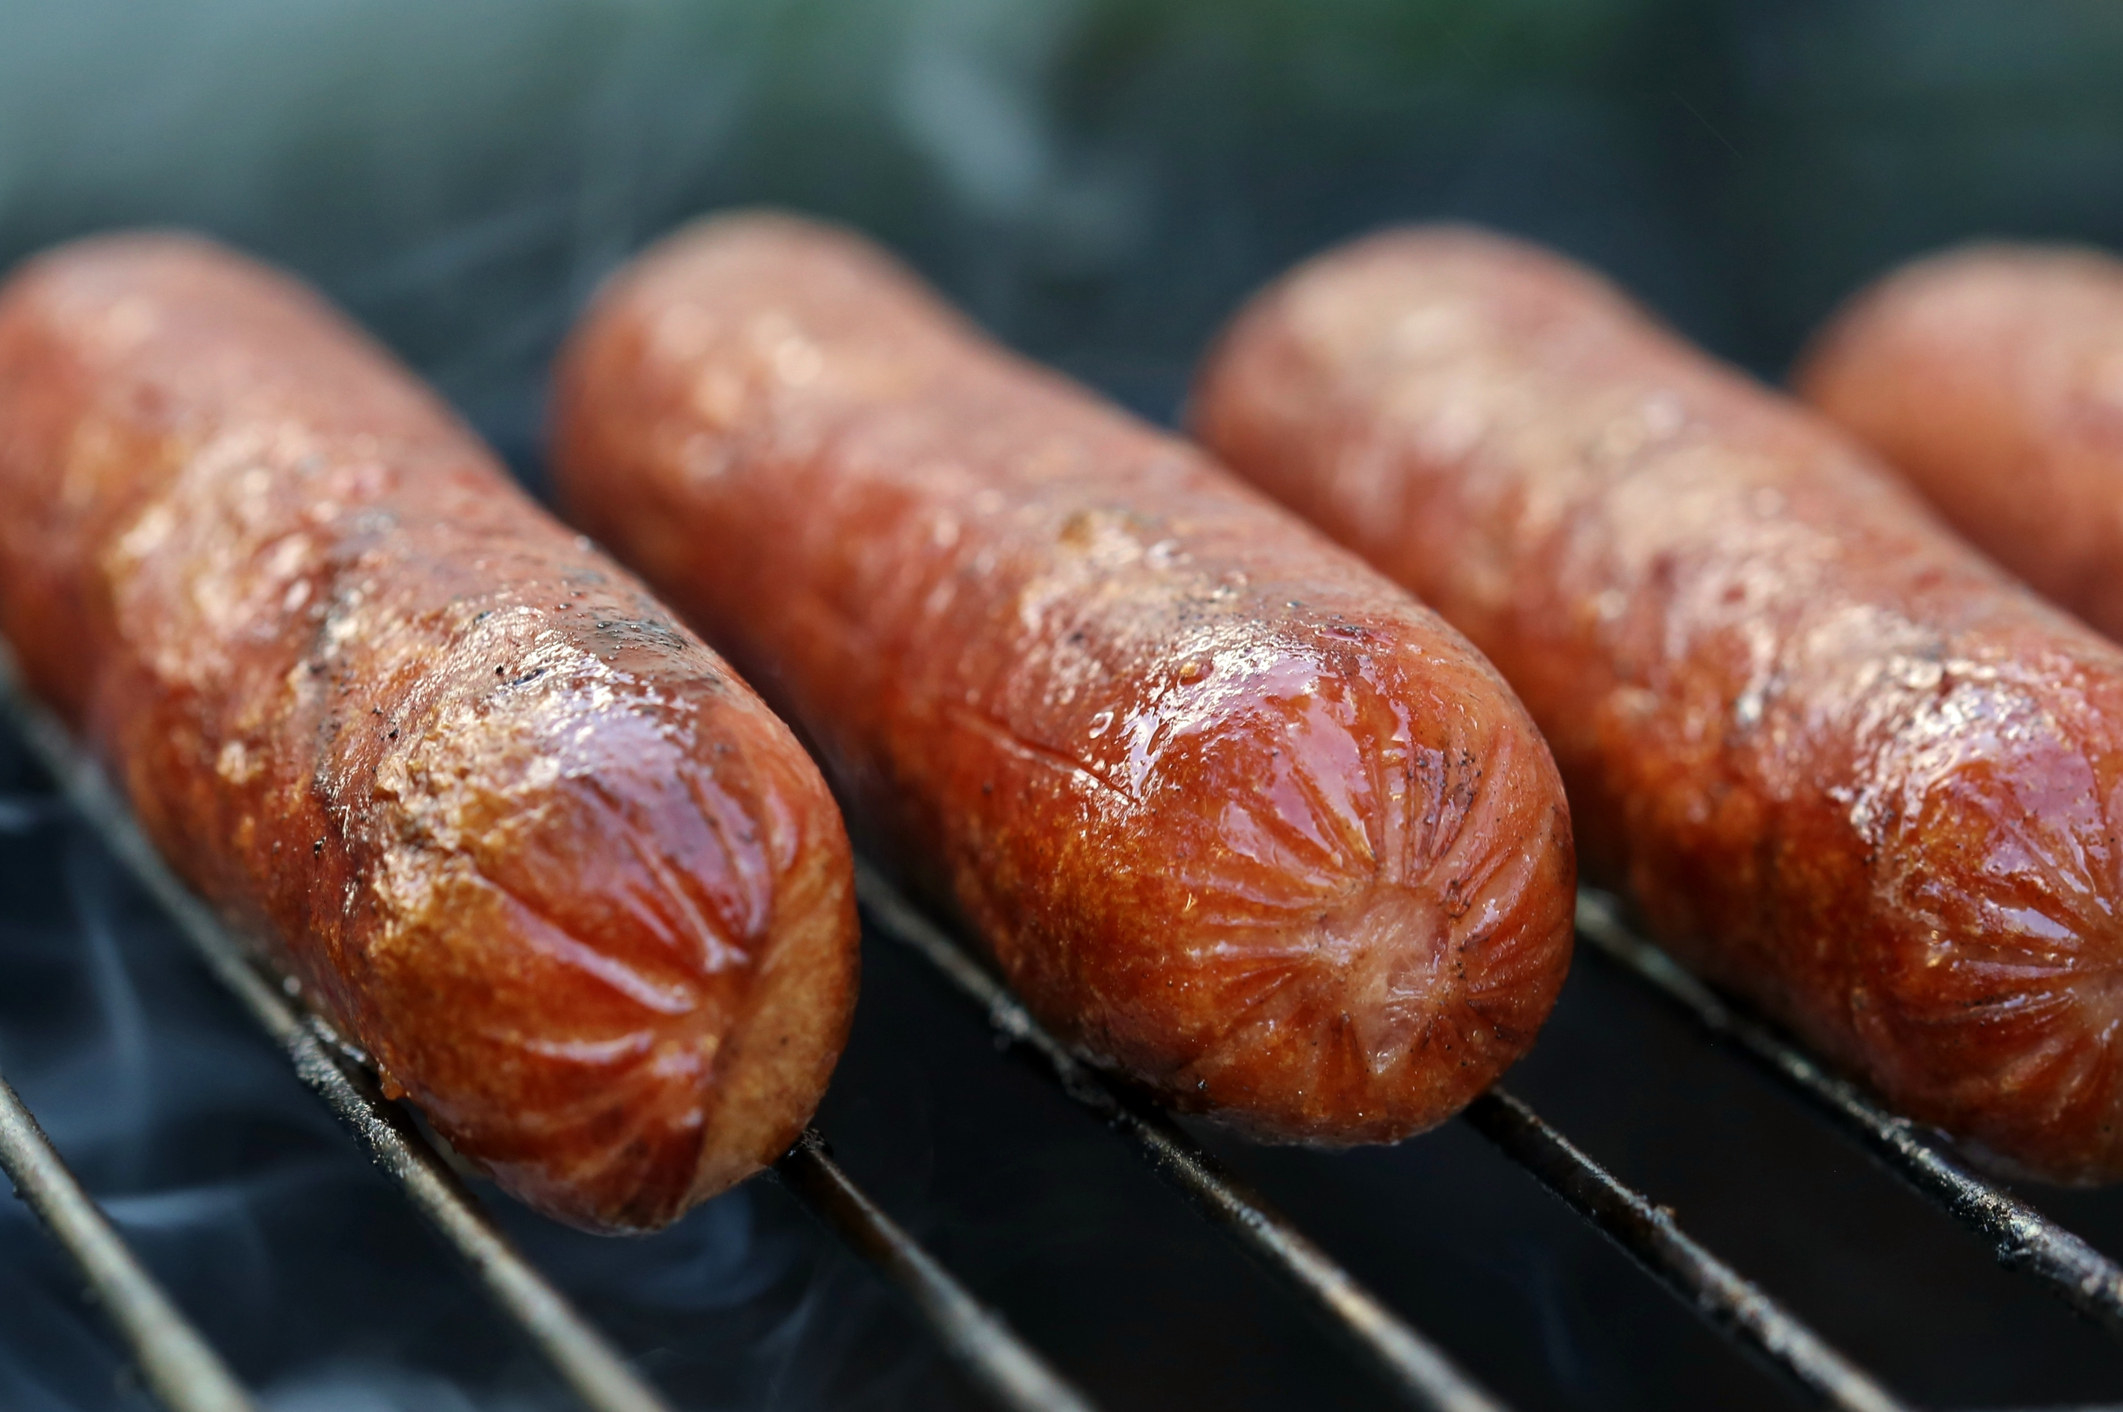 Hot dogs cooking on the grill.